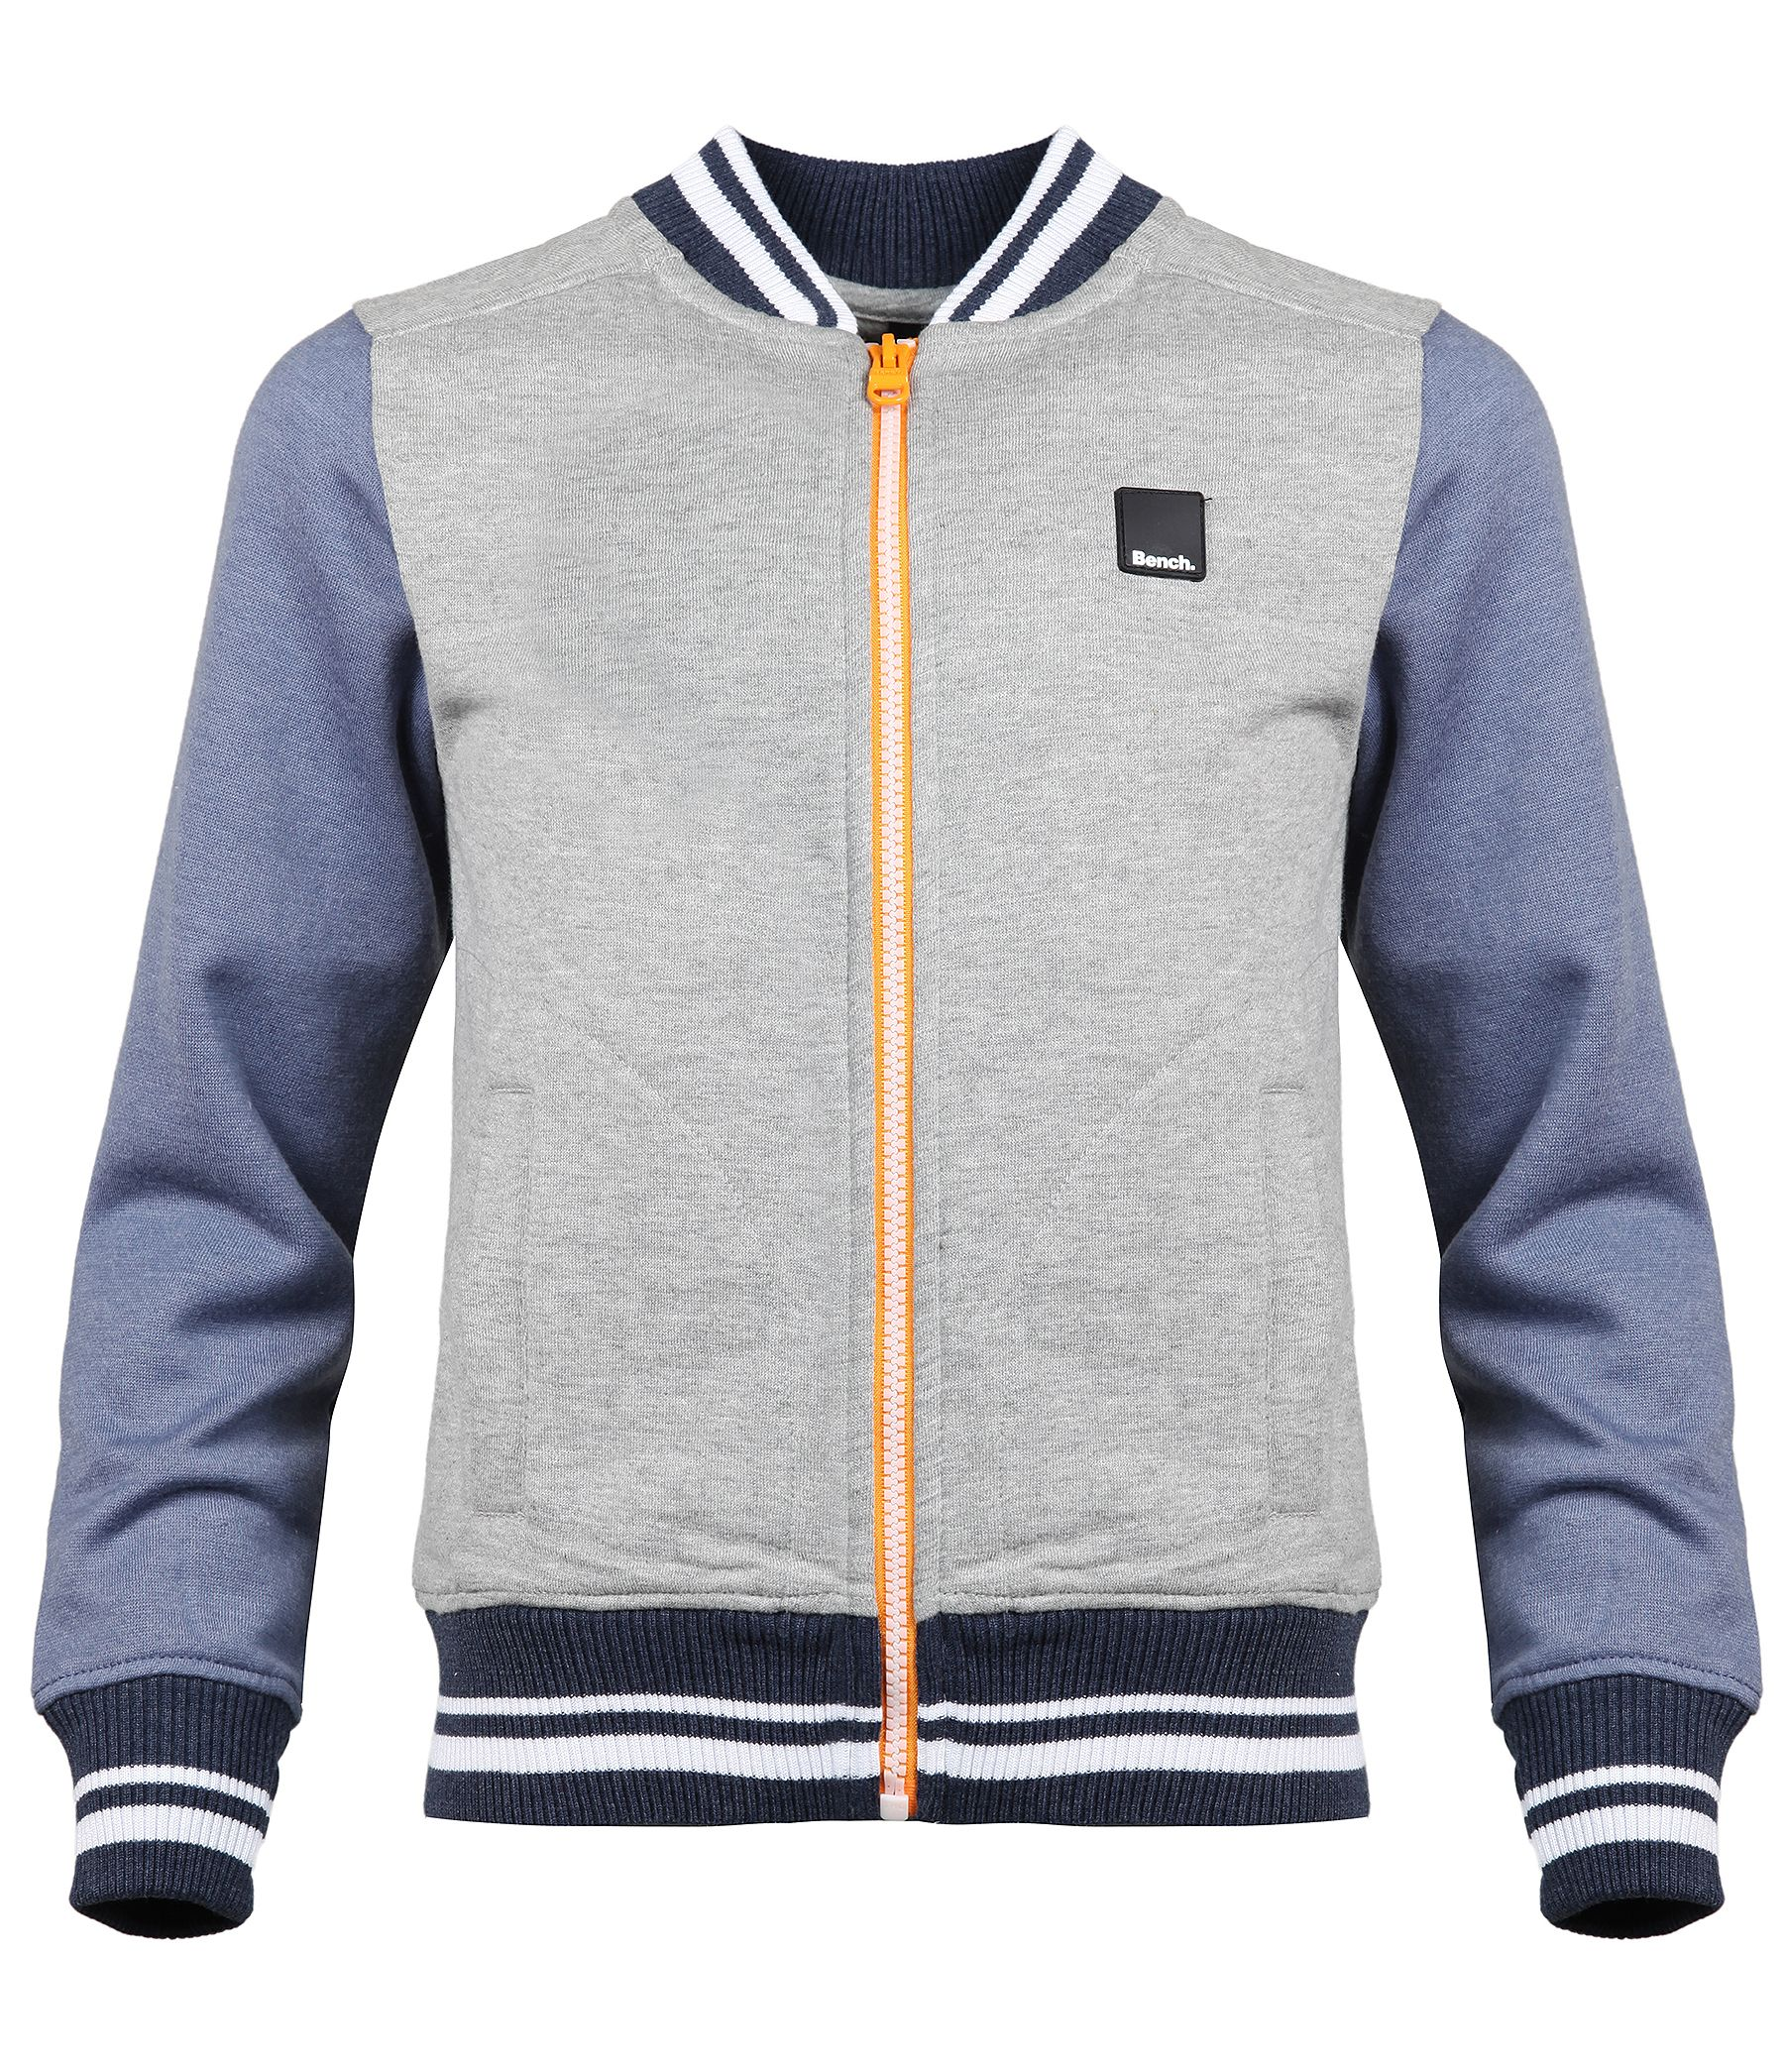 Boys hour zip up top